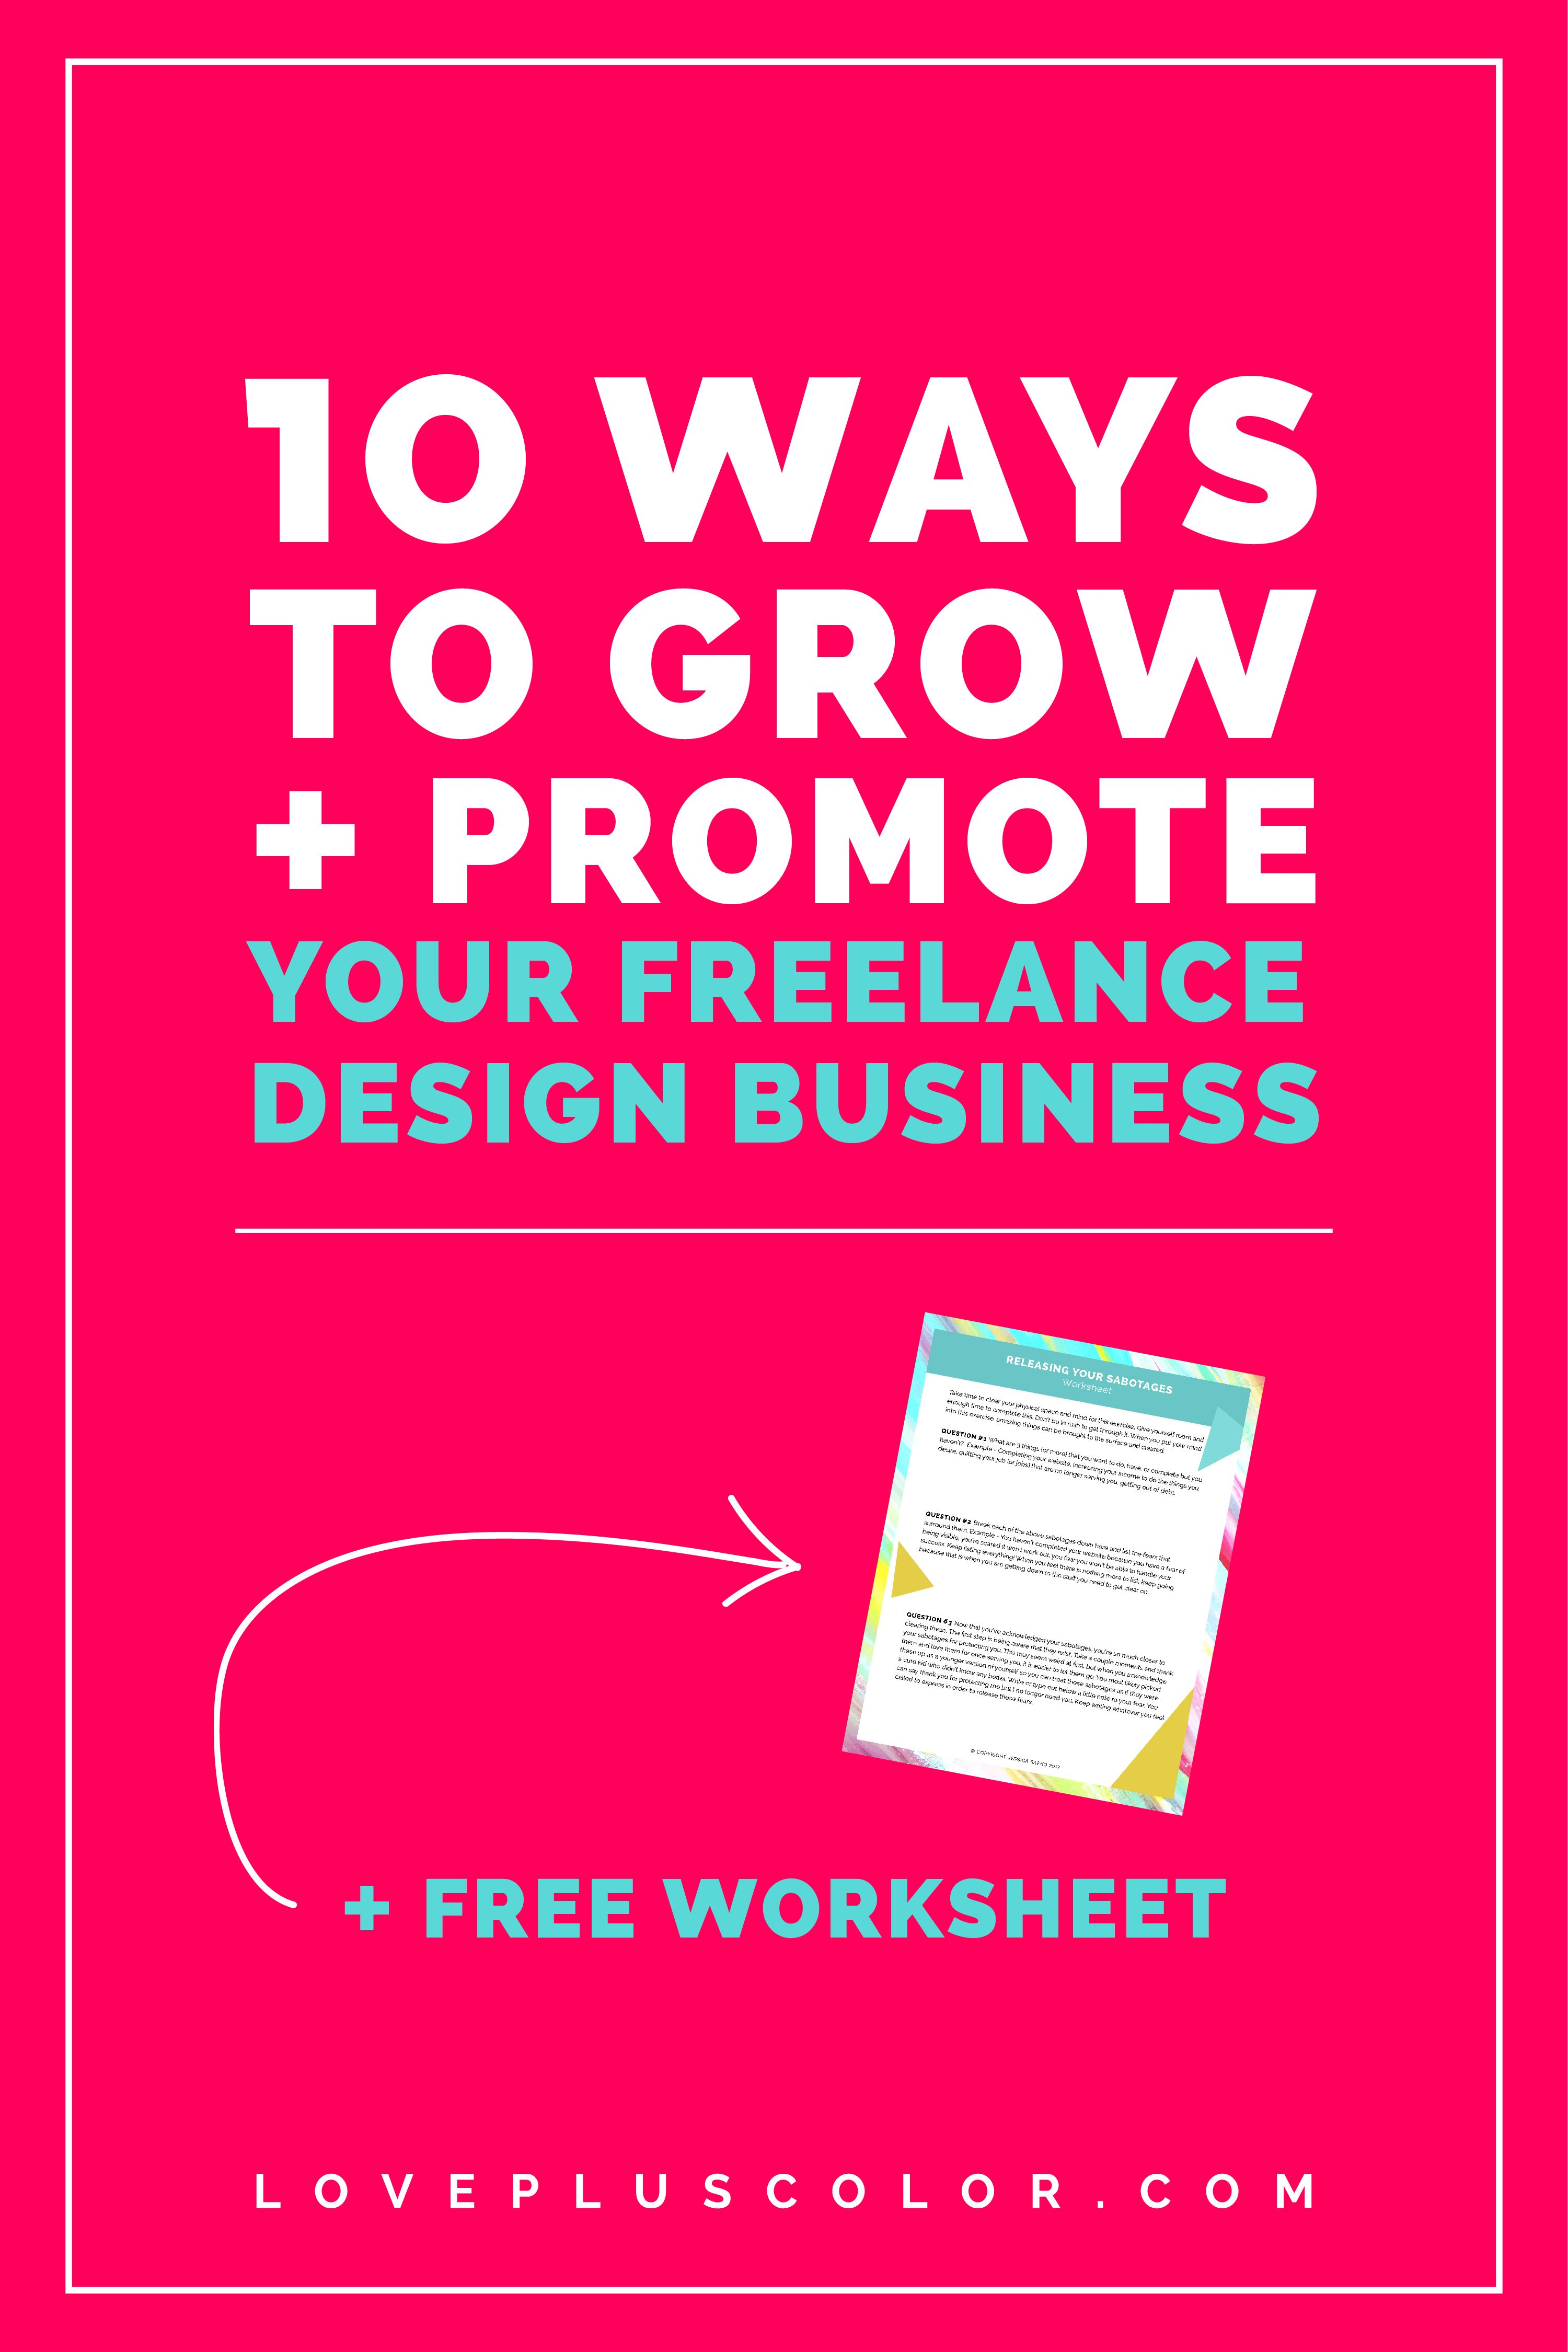 10 Ways You Can Grow And Promote Your Freelance Design